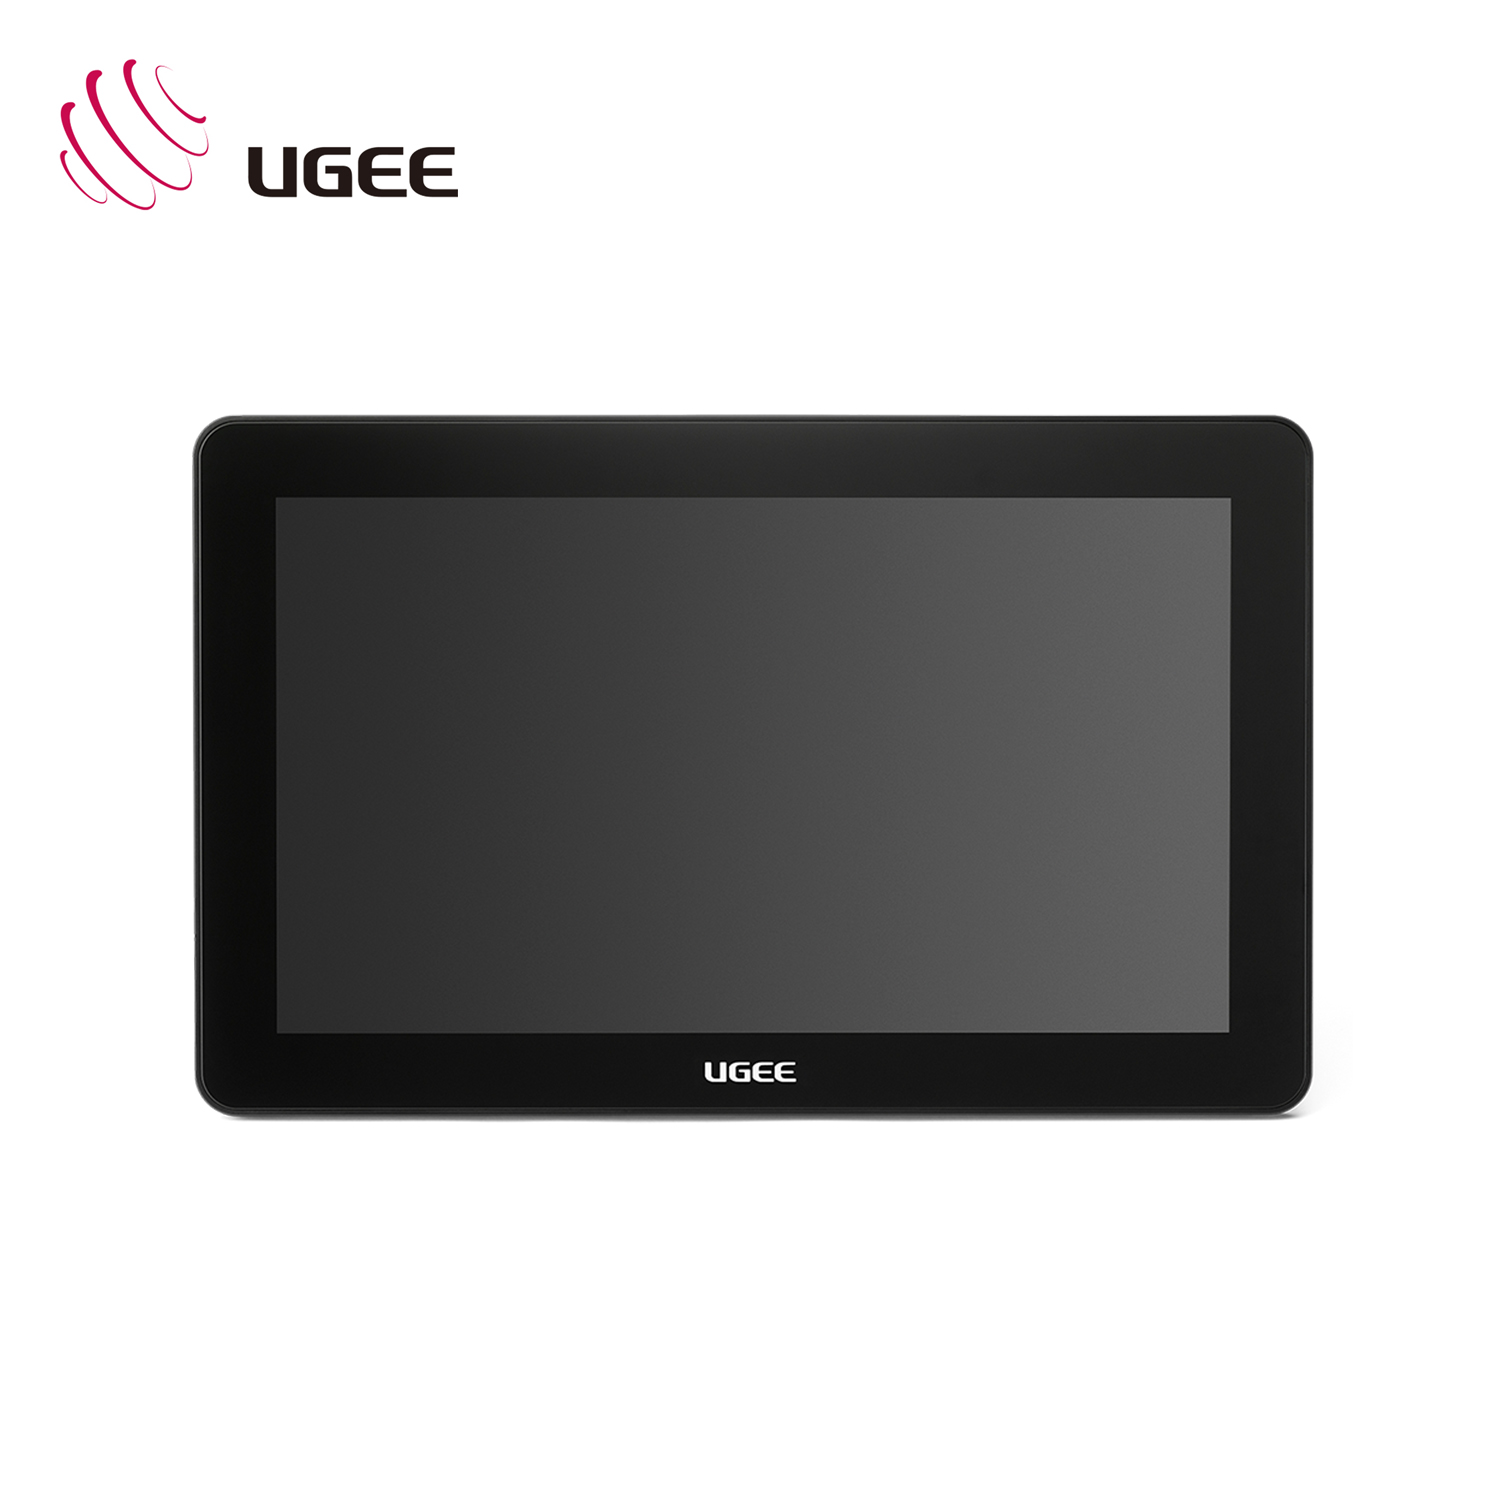 Ugee UGEE Paperless E-Signature Solution 15.6 inch IPS LCD Screen Electronic Digital Writing Pen Display Graphic Tablet Monitor Digital Handwriting image11